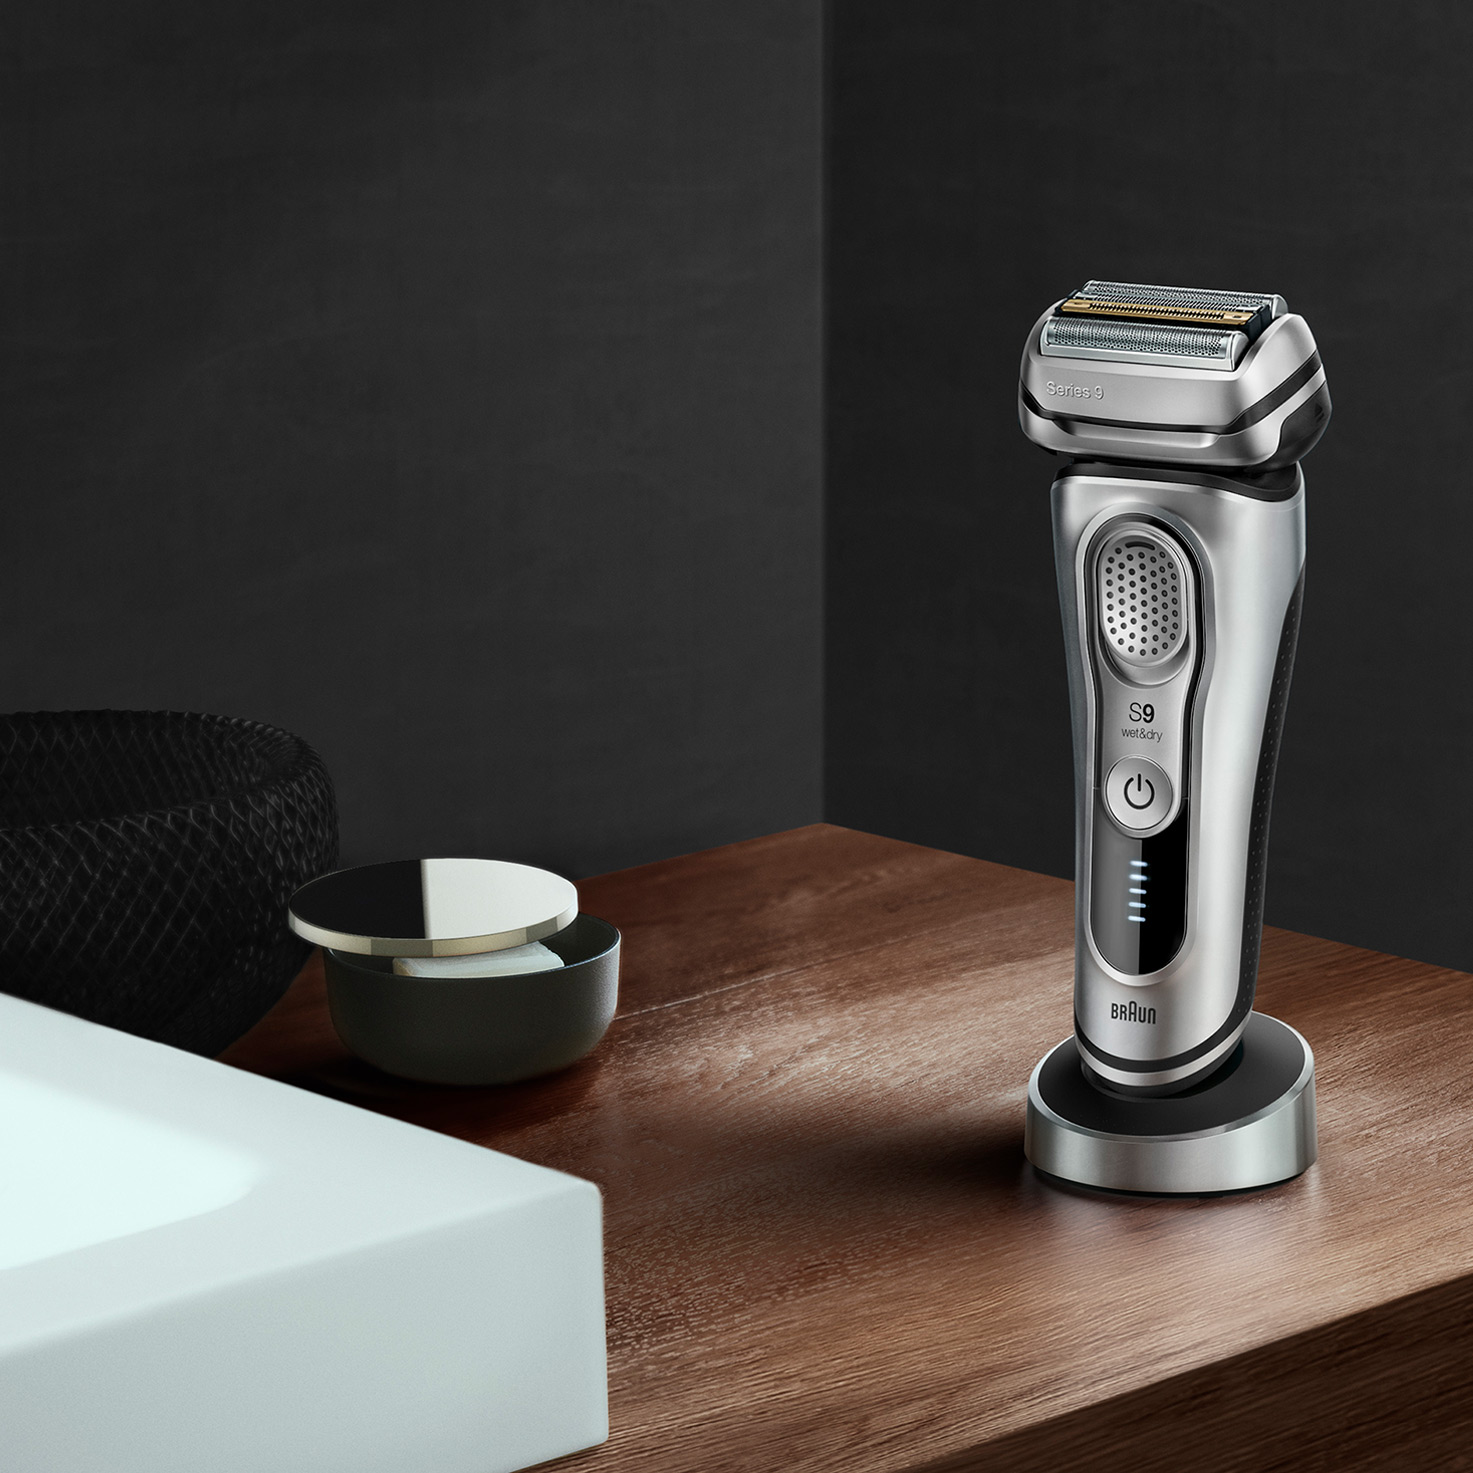 Series 9 9350s shaver in charging stand